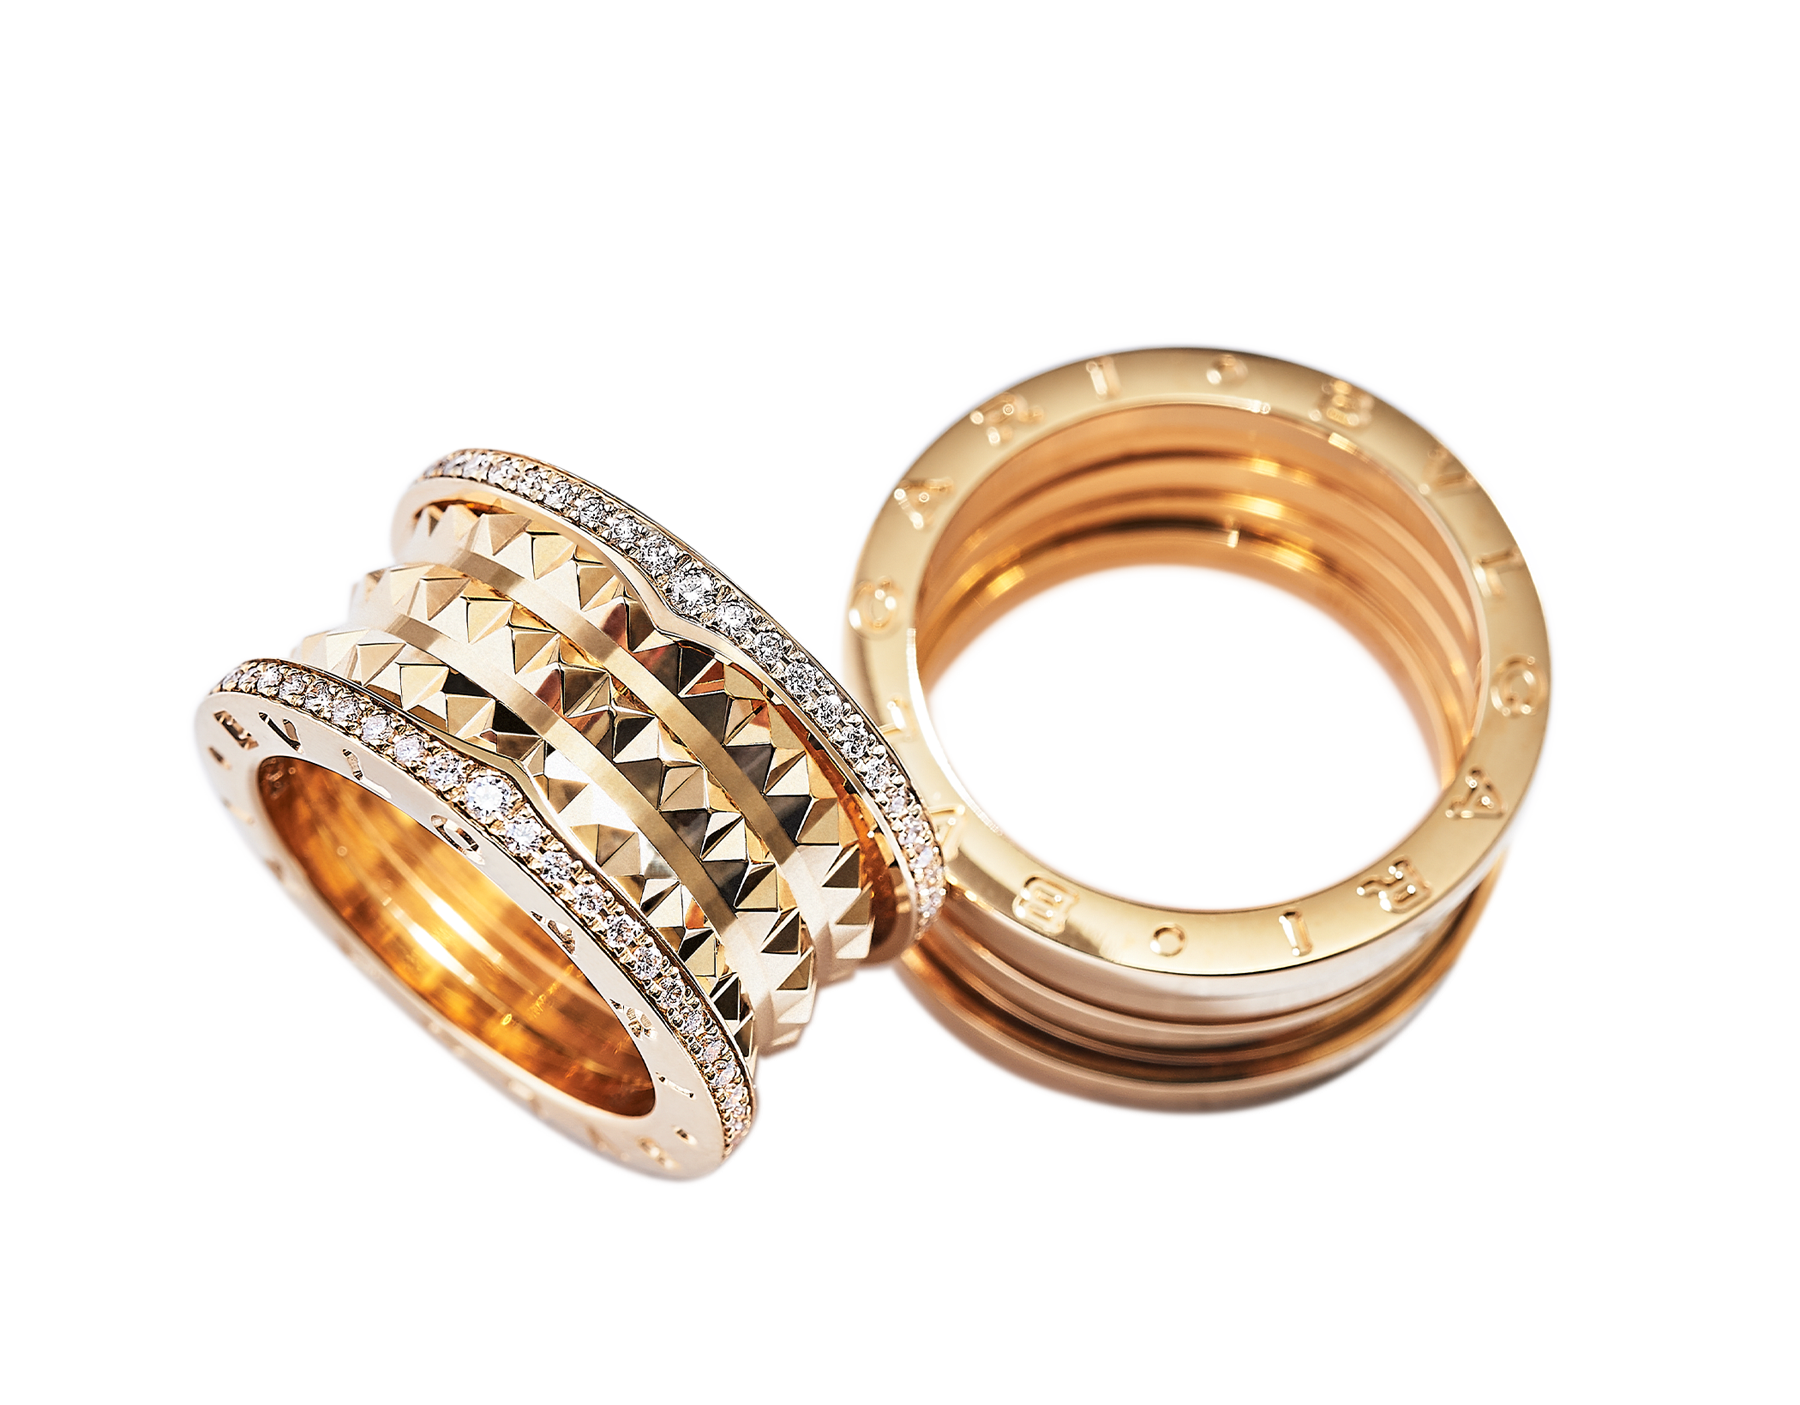 Bagues pour couples B.zero1 Rock et B.zero1 en or jaune 18 K, dont une avec spirale cloutée et pavé diamant sur les bords. Un duo de bagues intemporel au design avant-gardiste mêlé à un charme audacieux. Bzero1-Rock-and-Bzero1-Yellow-Gold-Couples-Rings image 1